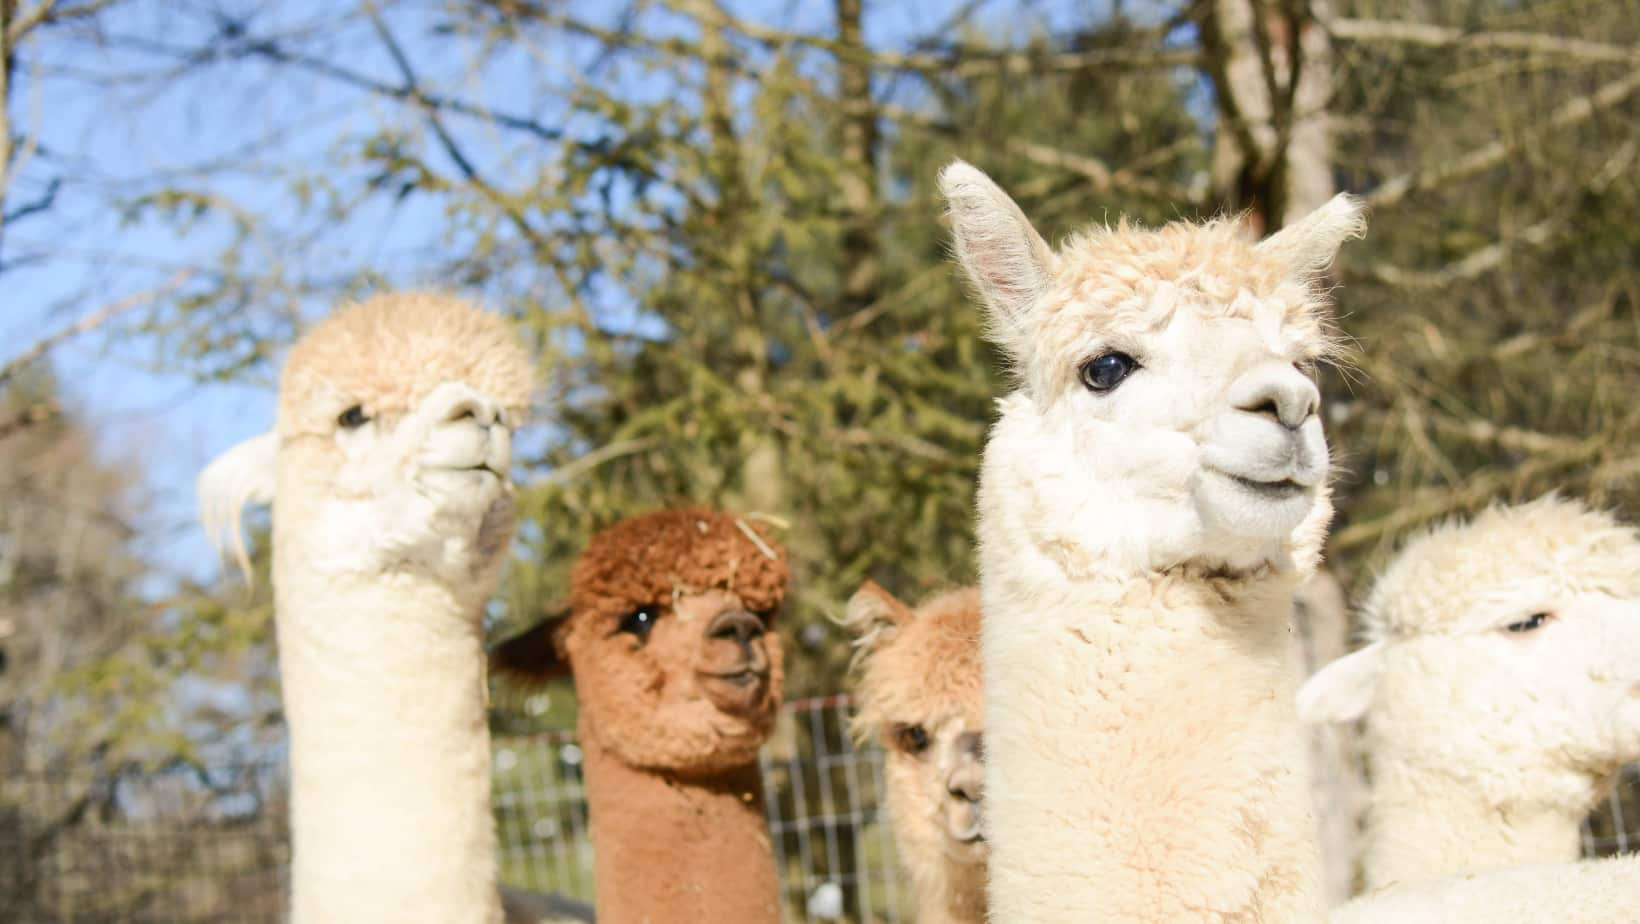 Adorable alpacas at Lilymoore Farm in the Hudson Valley